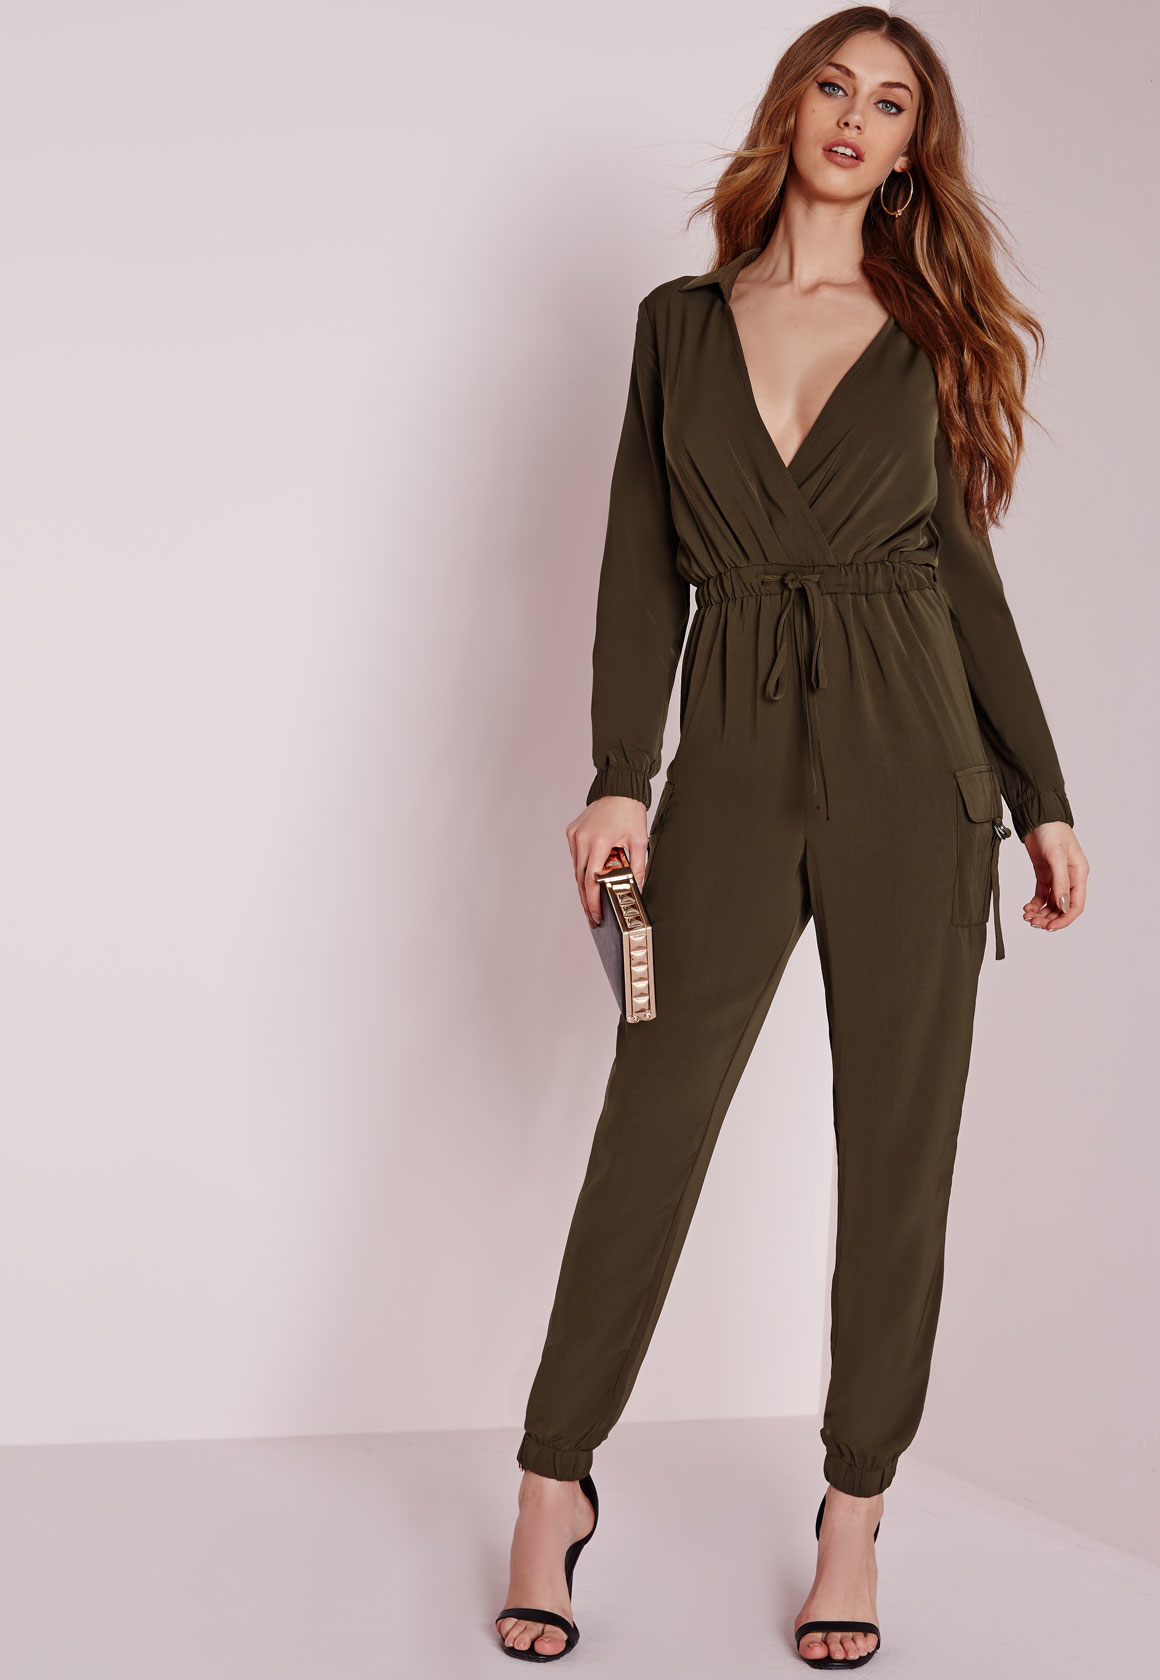 384f4c0949 Lyst - Missguided Long Sleeve Pocket Detail Jumpsuit Khaki in Natural